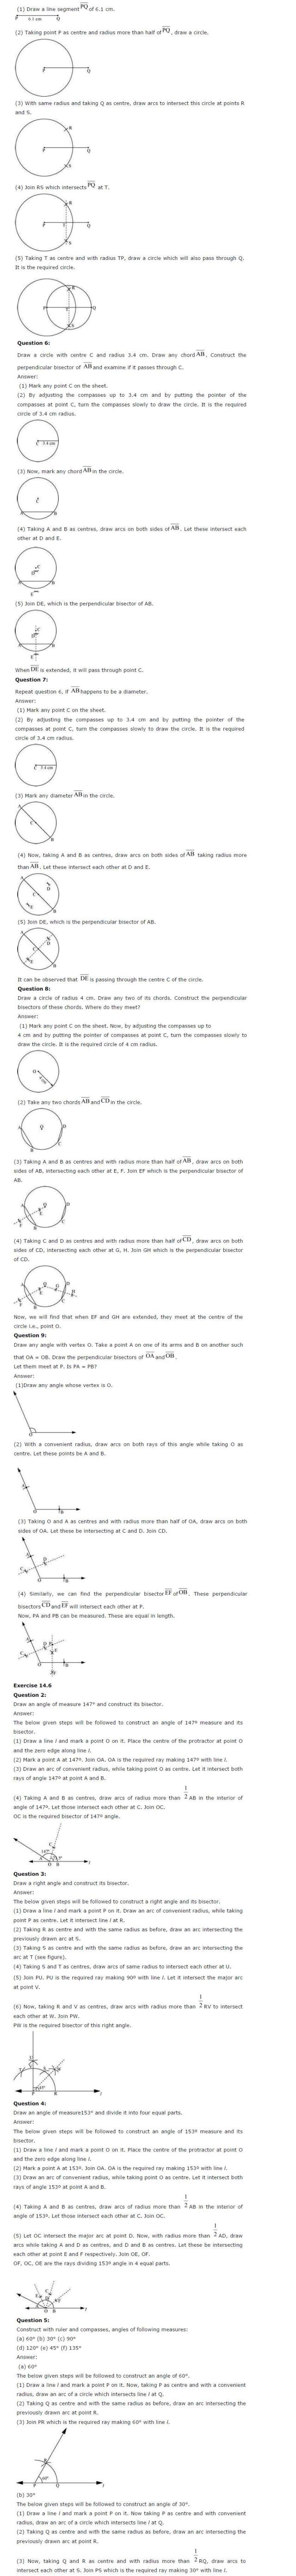 NCERT Solutions for Class 6th Maths 14 4